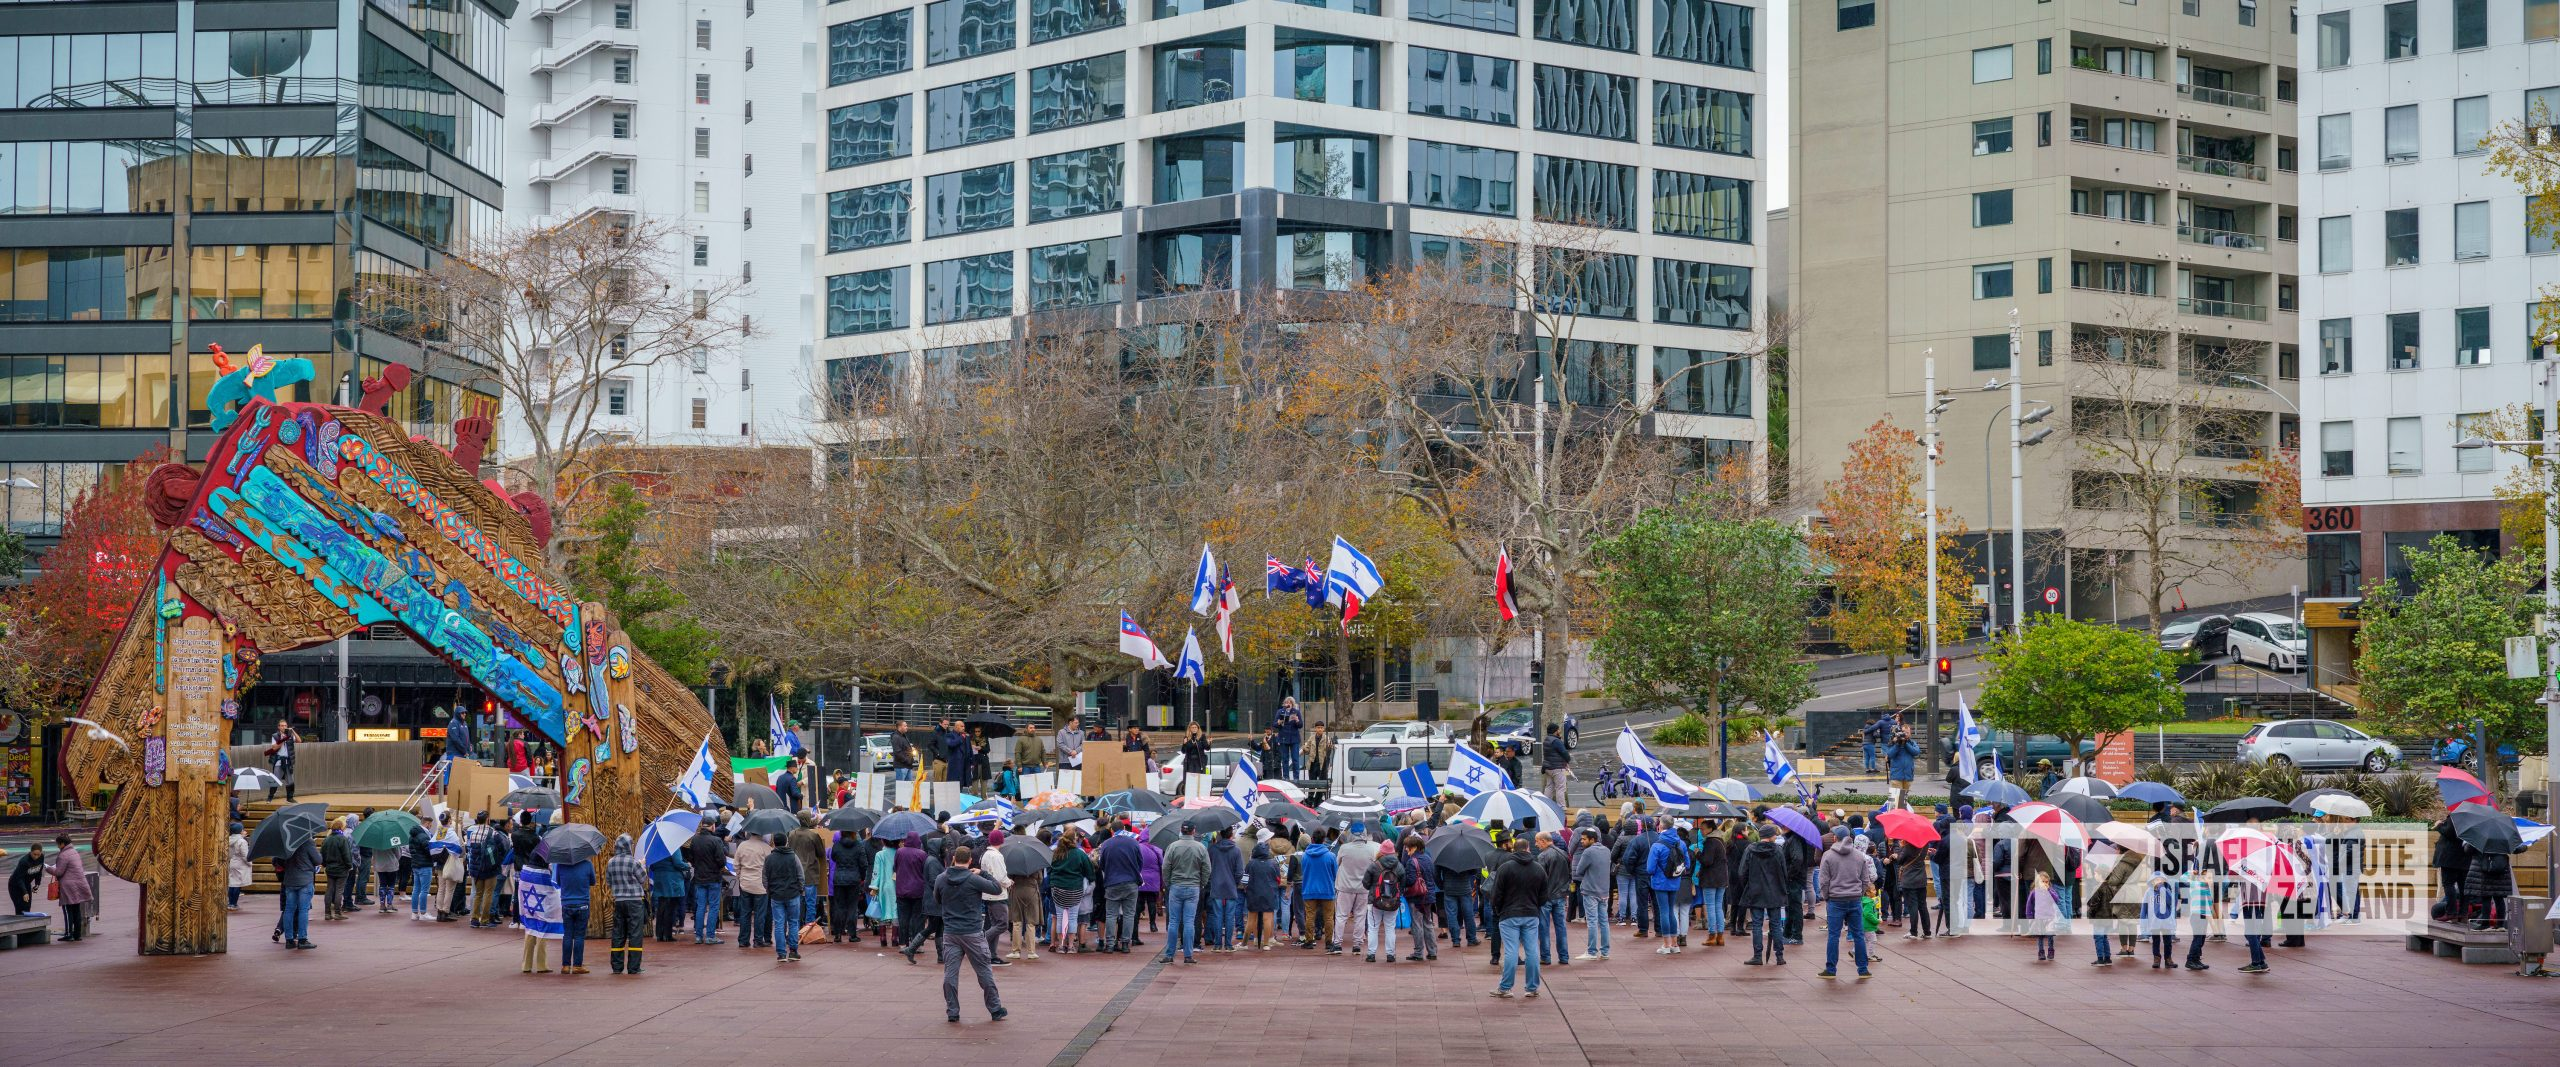 Kiwis stand in solidarity with Israel